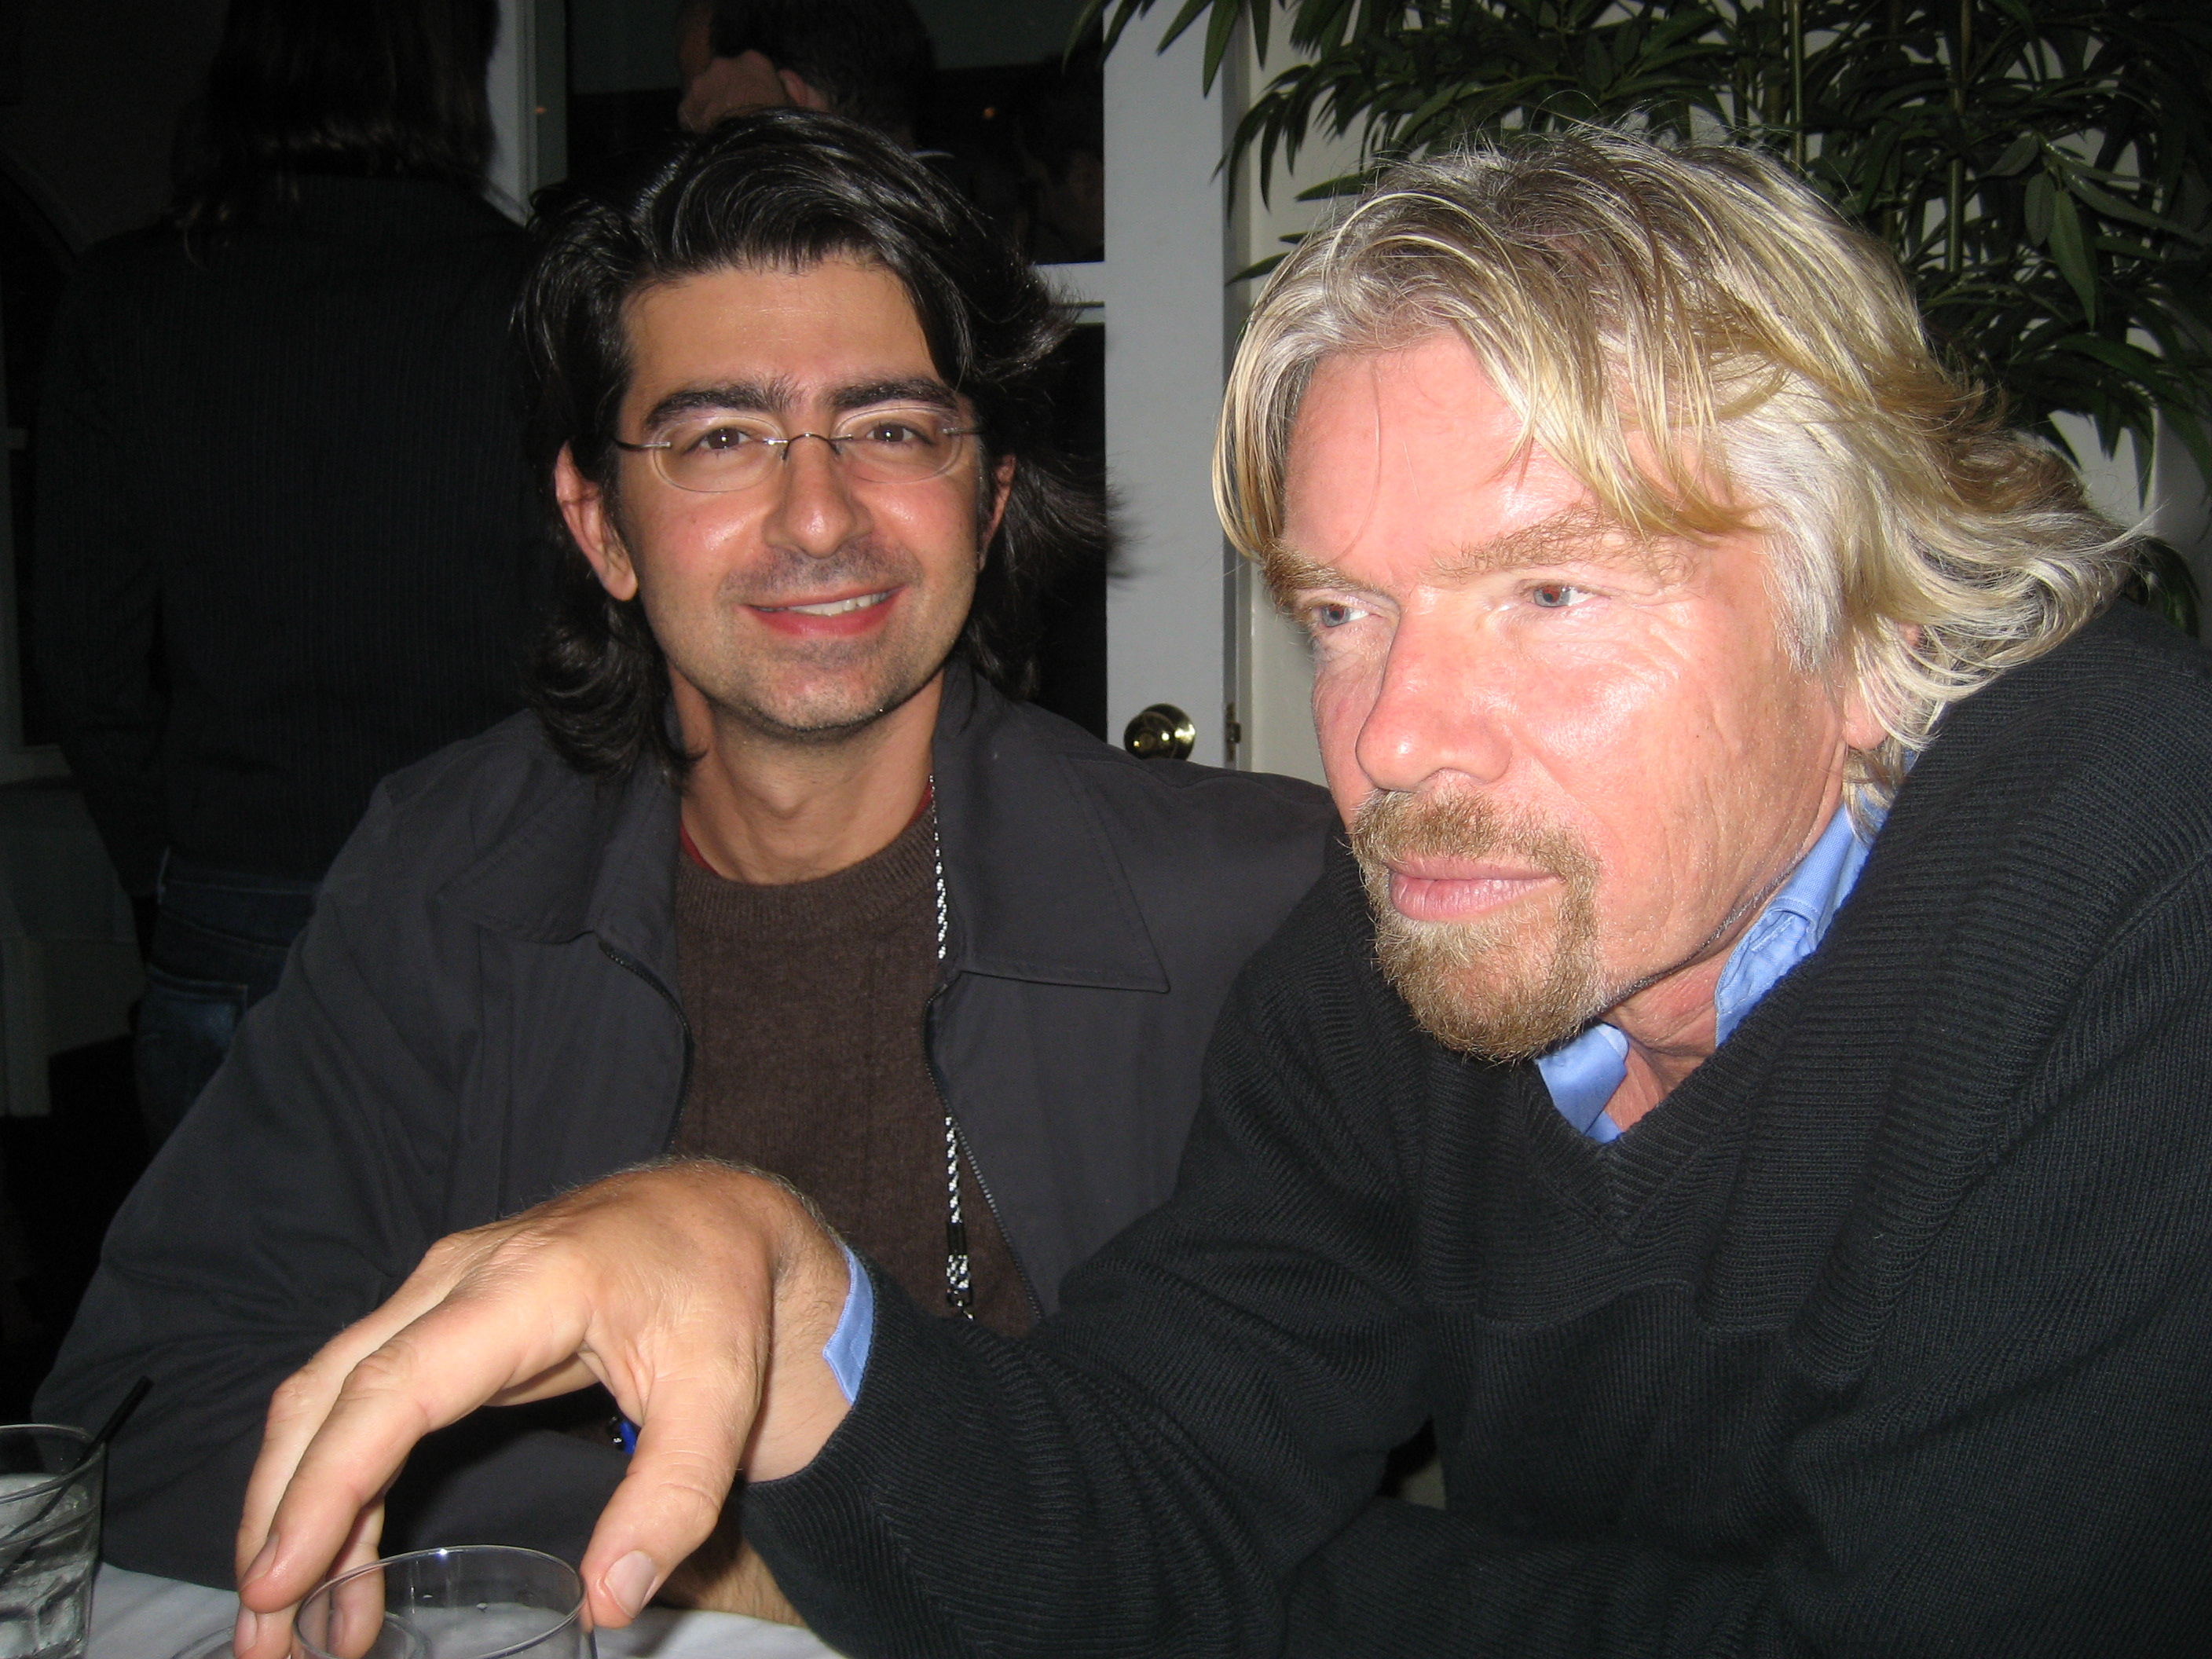 File:Pierre Omidyar Richard Branson.jpg - Wikimedia Commons